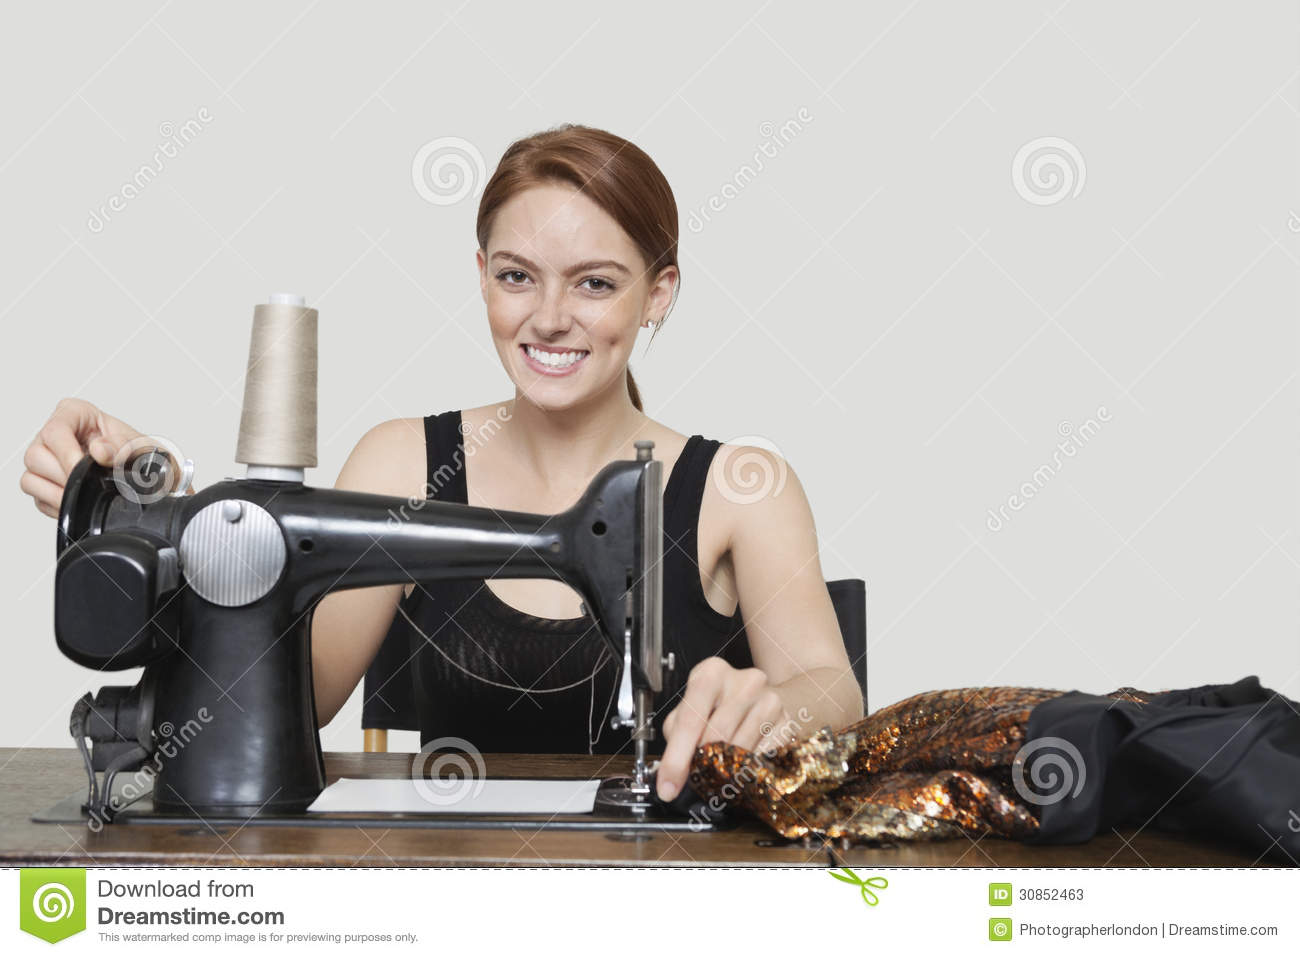 Tailor With Sewing Machine Clipart.